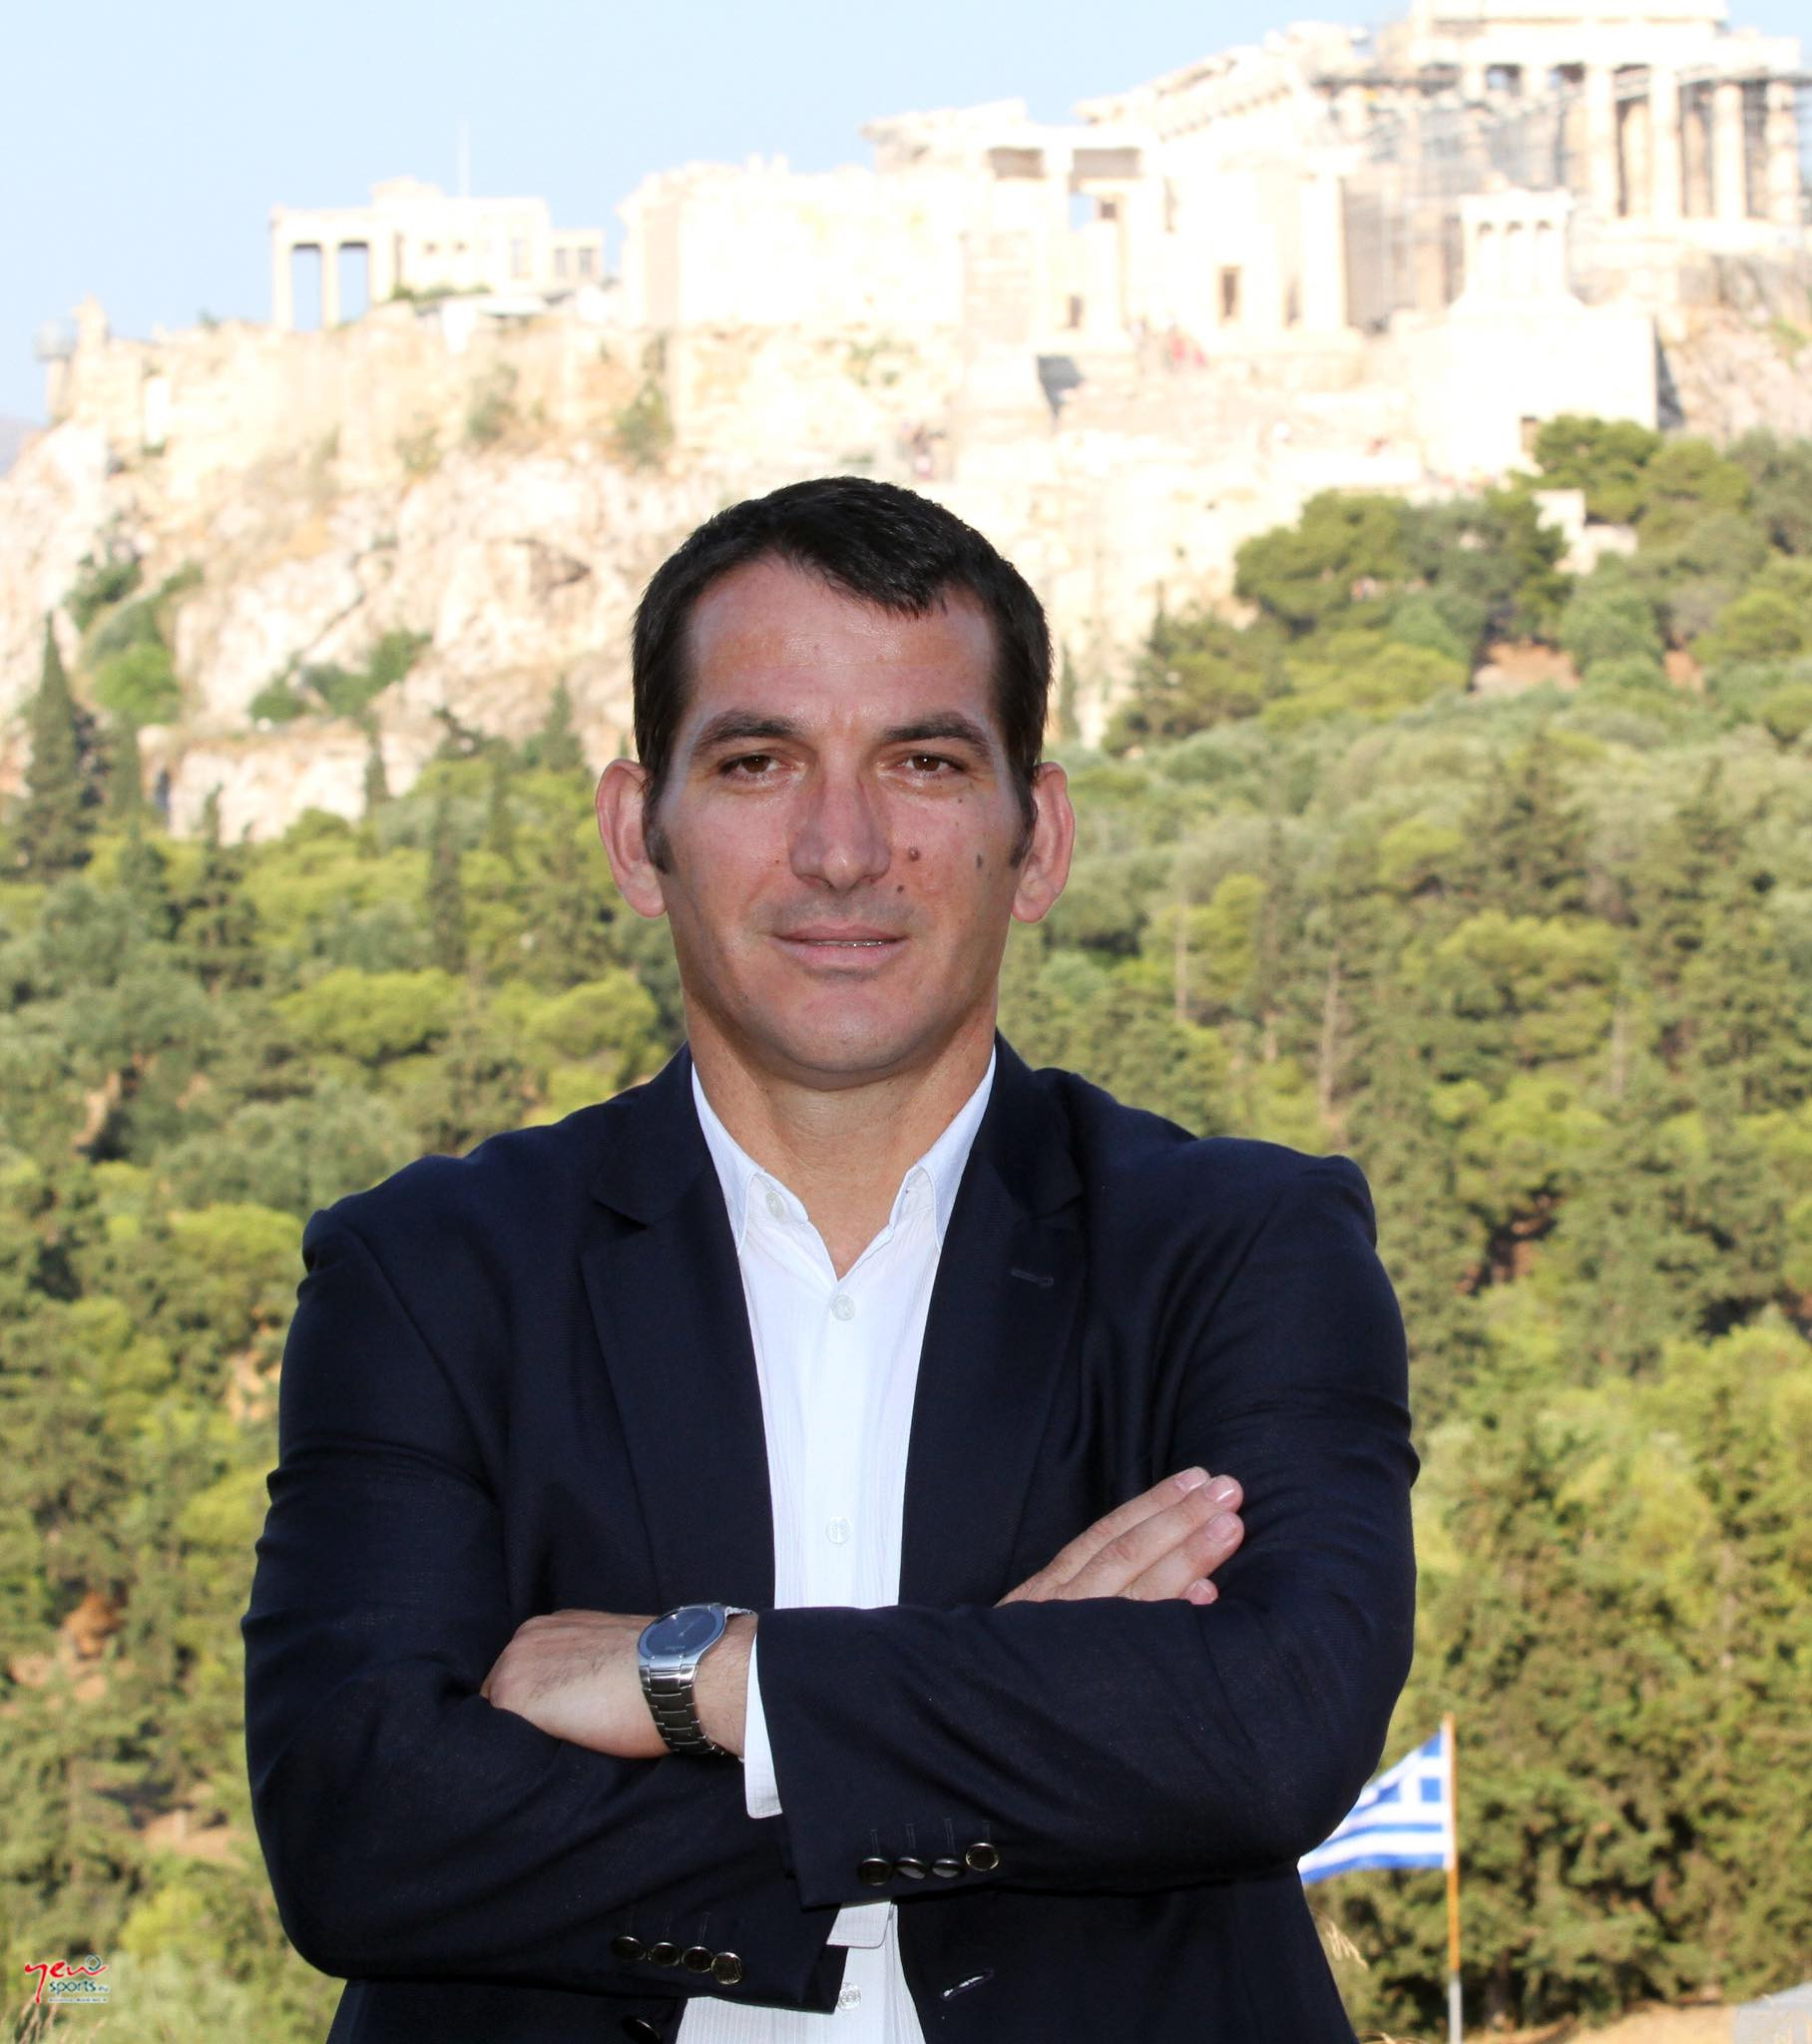 Greece's Pyrros Dimas has put his name to a statement calling upon the entire IWF Board - of which he is a member - to resign in a bid to save the sport's Olympic future ©Peace and Sport